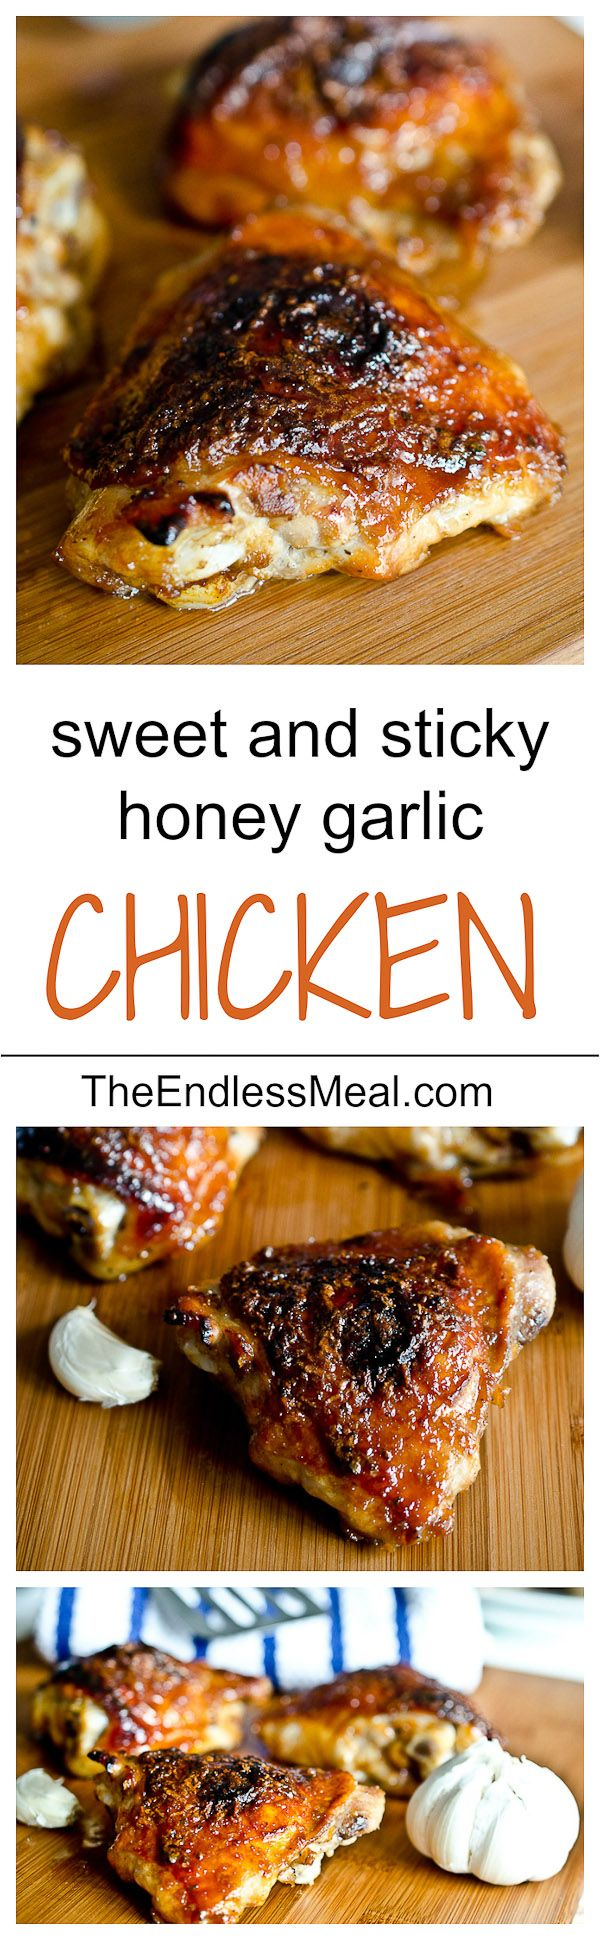 "Honey Garlic Chicken. My notes: used boneless/skinless. Didn't have molasses--must try next time. *Don't use chopper for garlic---use microplane & create paste, as stated* There wasn't much ""sauce"", but don't water it down w/ anything! Like the cooking method. Also see ""honey garlic chicken wings"" recipe on to try board."